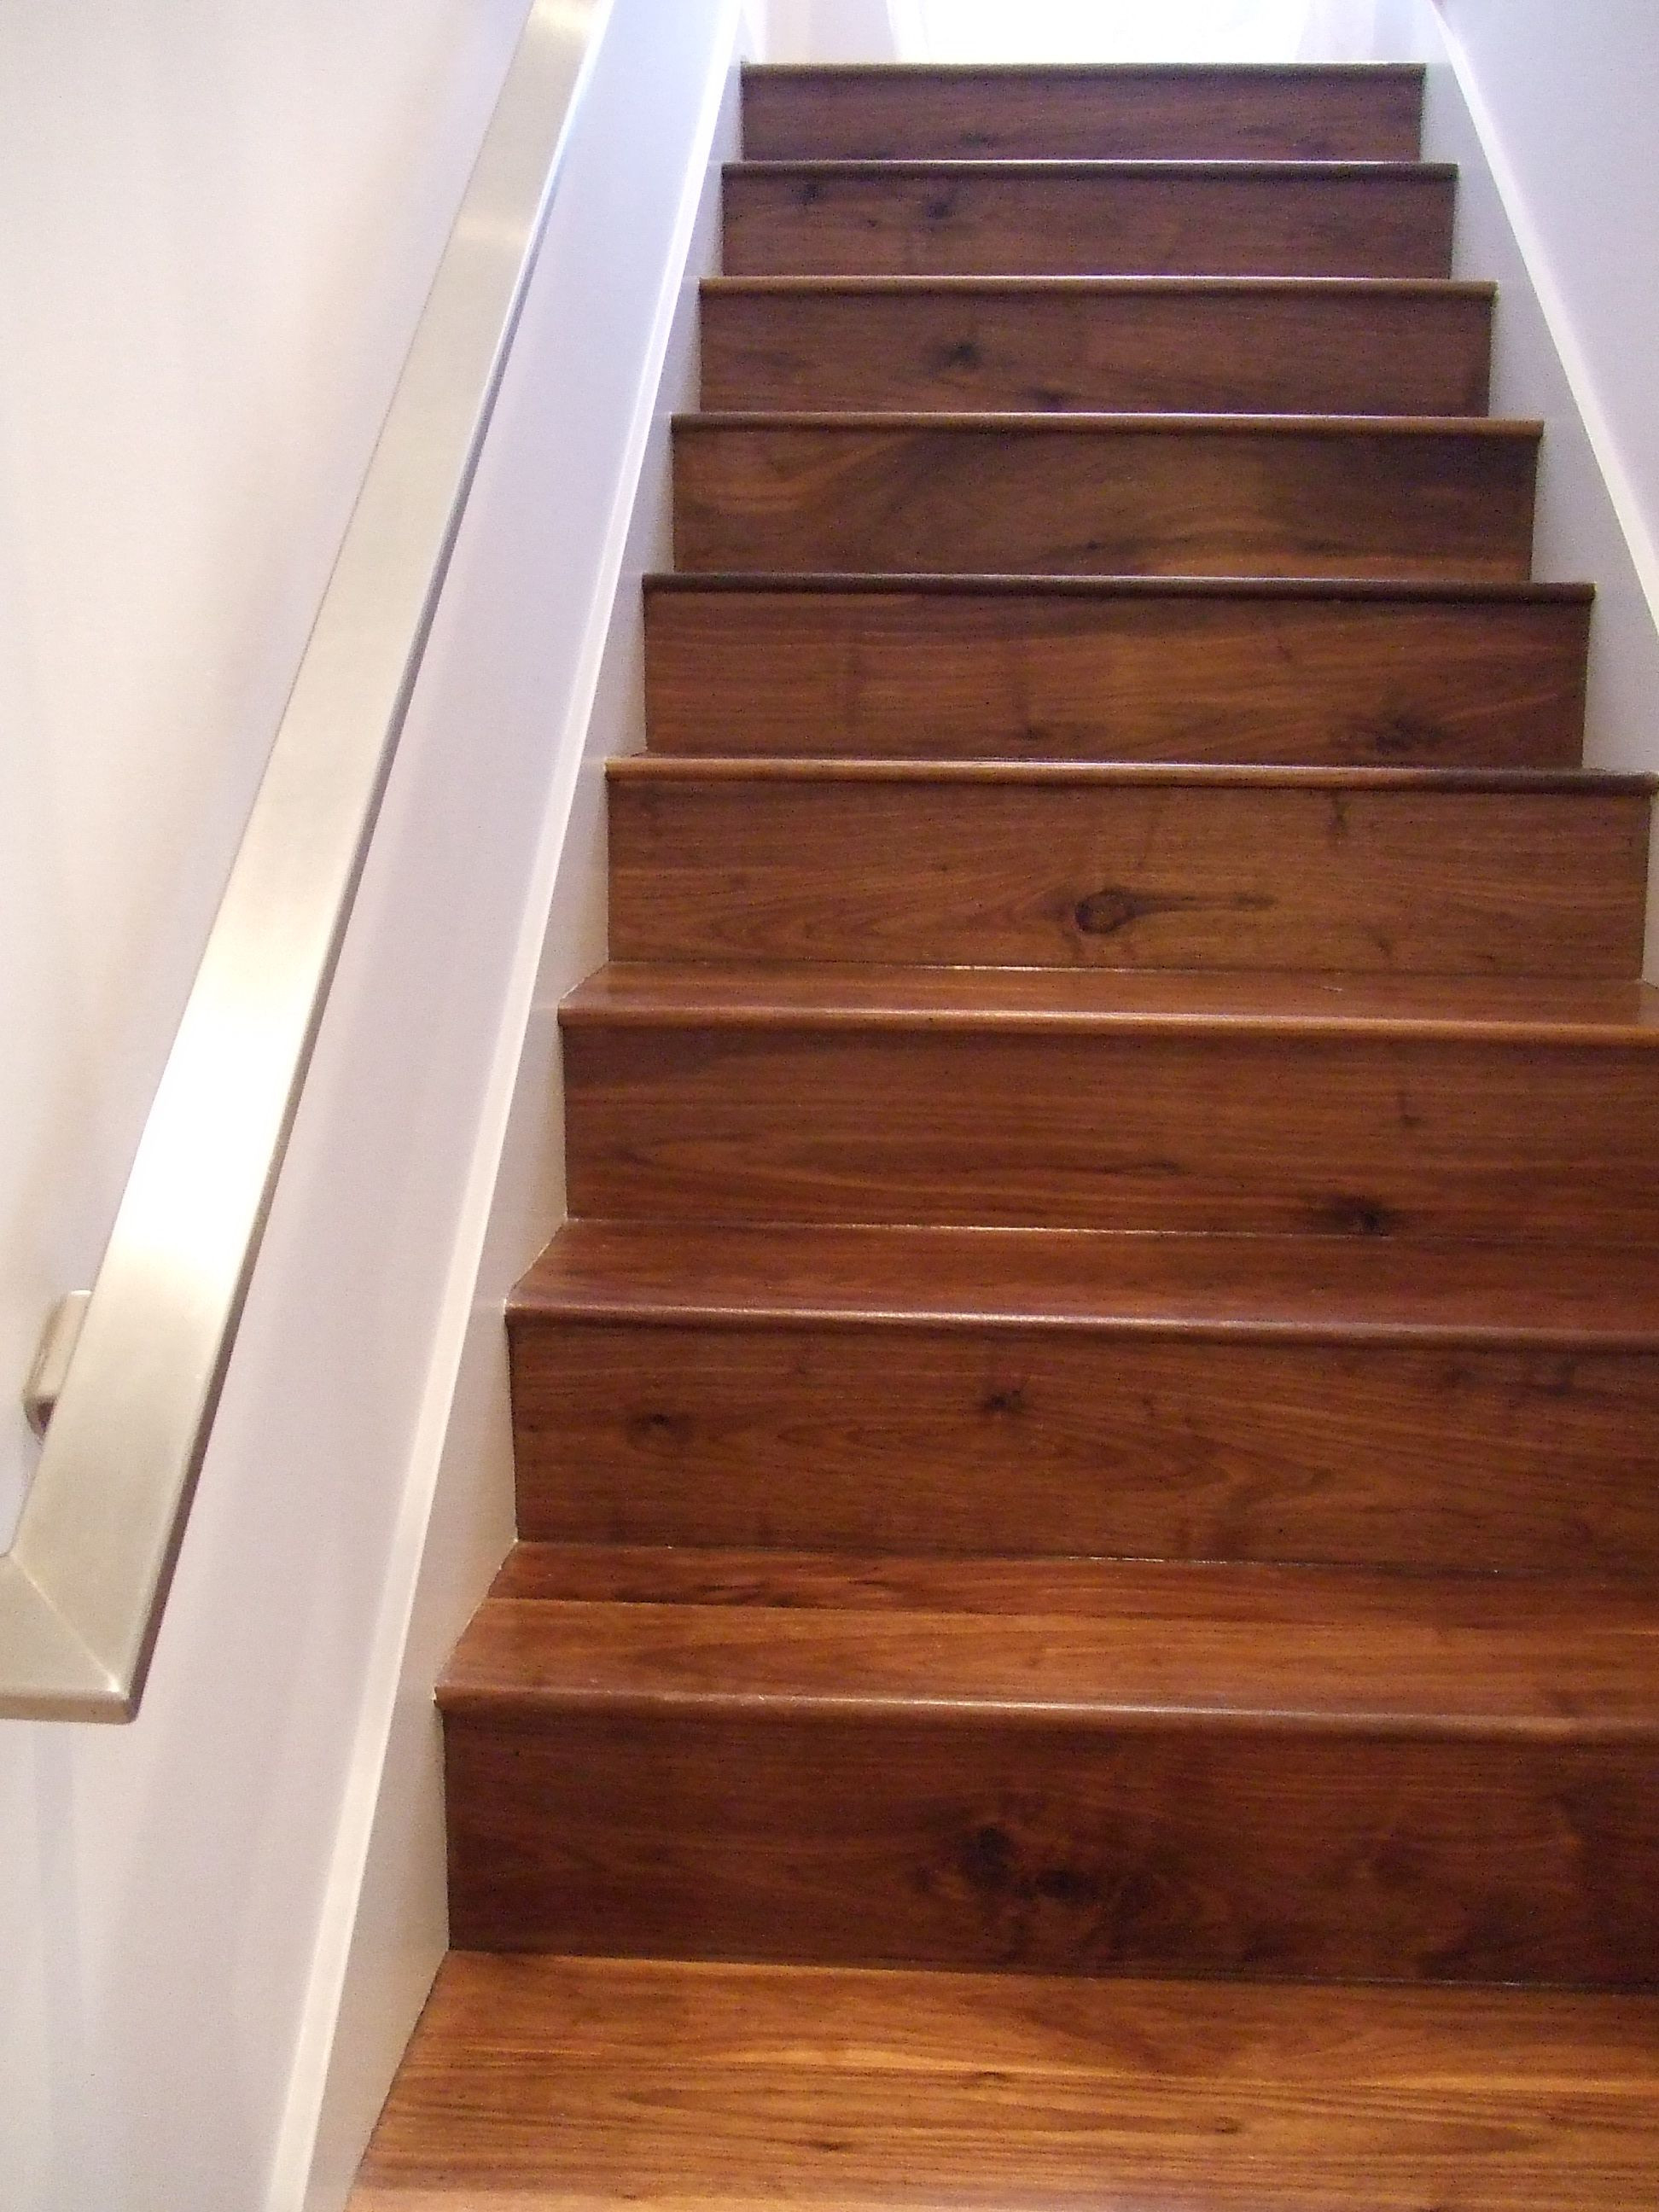 Maple Hardwood Flooring for Sale Of Black American Walnut Stairs My House Pinterest House Pertaining to Black American Walnut Stairs